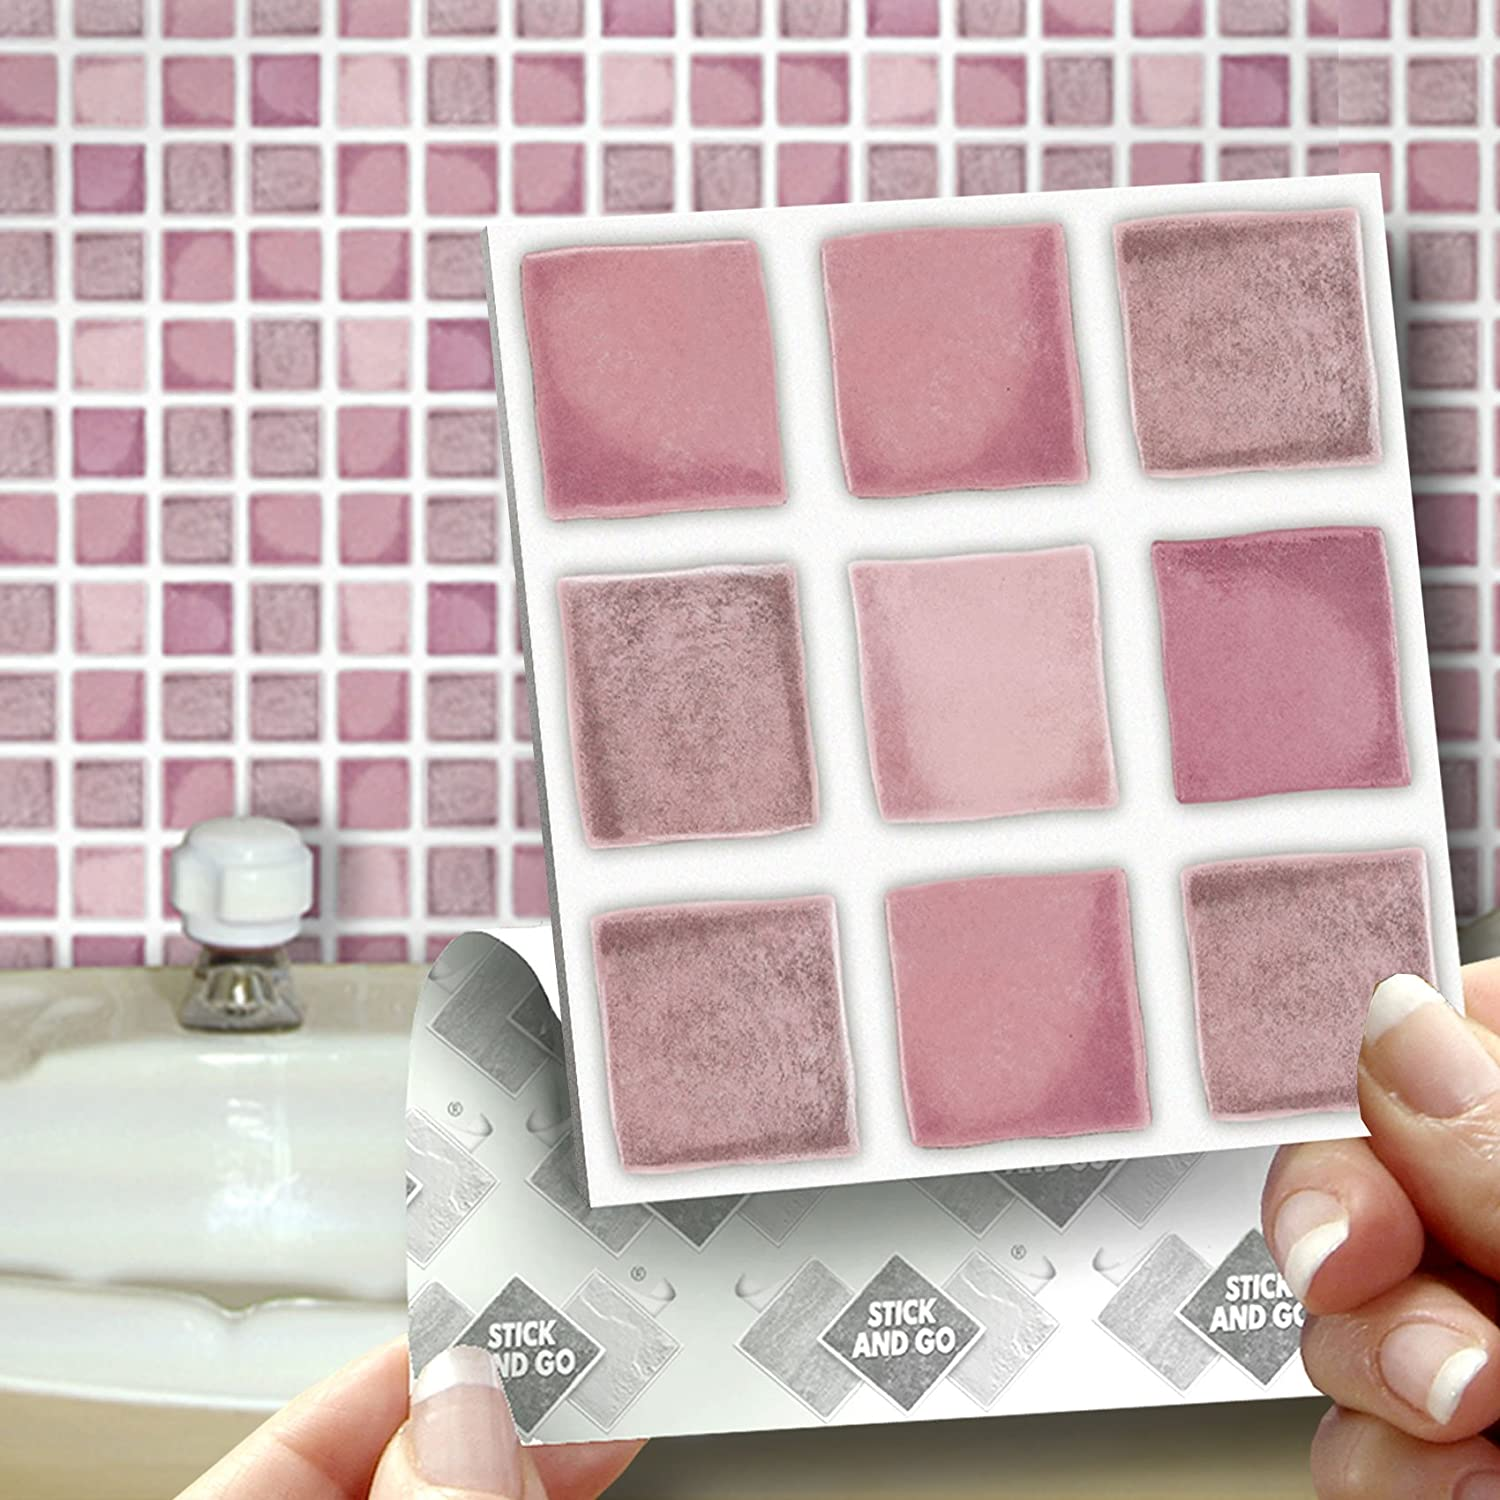 Stick on wall tiles bathroom - 18 Dusky Pink Effect Wall Tiles 2mm Thick And Solid Self Adhesive Stick On Wall Tile Stickers Transfers 18 Tiles Per Box 4 X 4 10cm X 10cm No